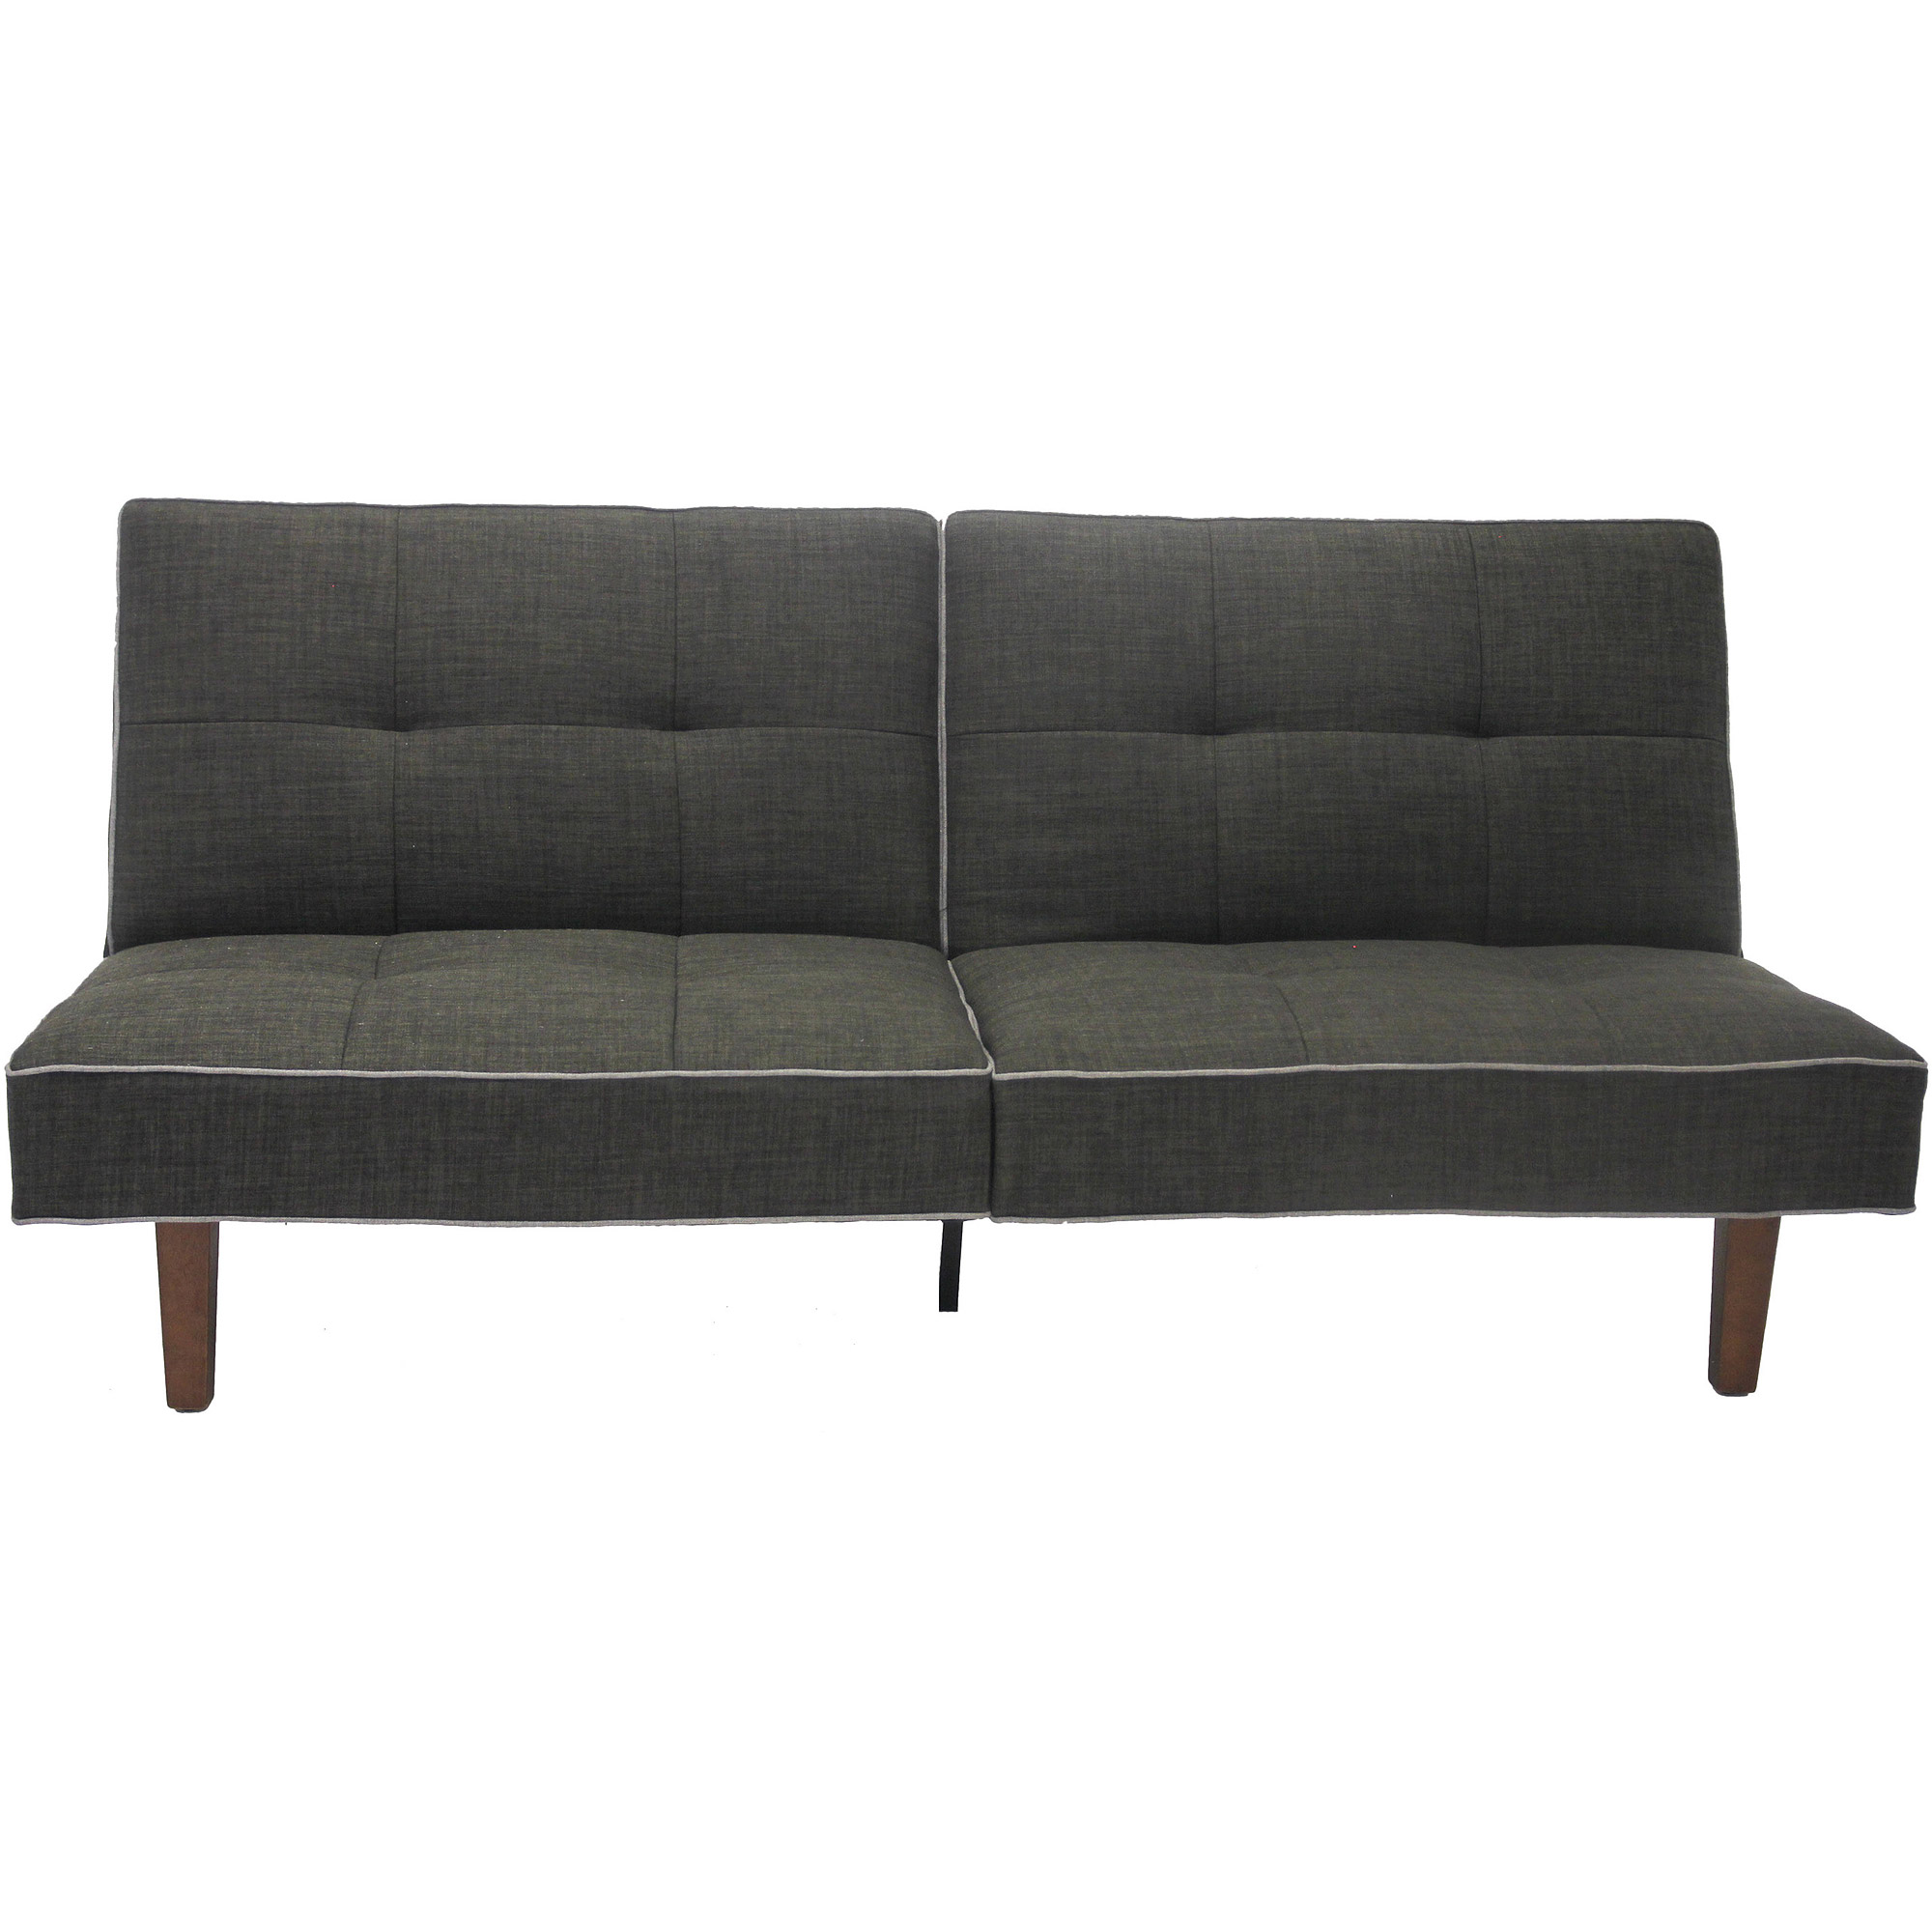 walmart faux futon size of x photo sofa leather full pretty lots sleeper mattress bed big